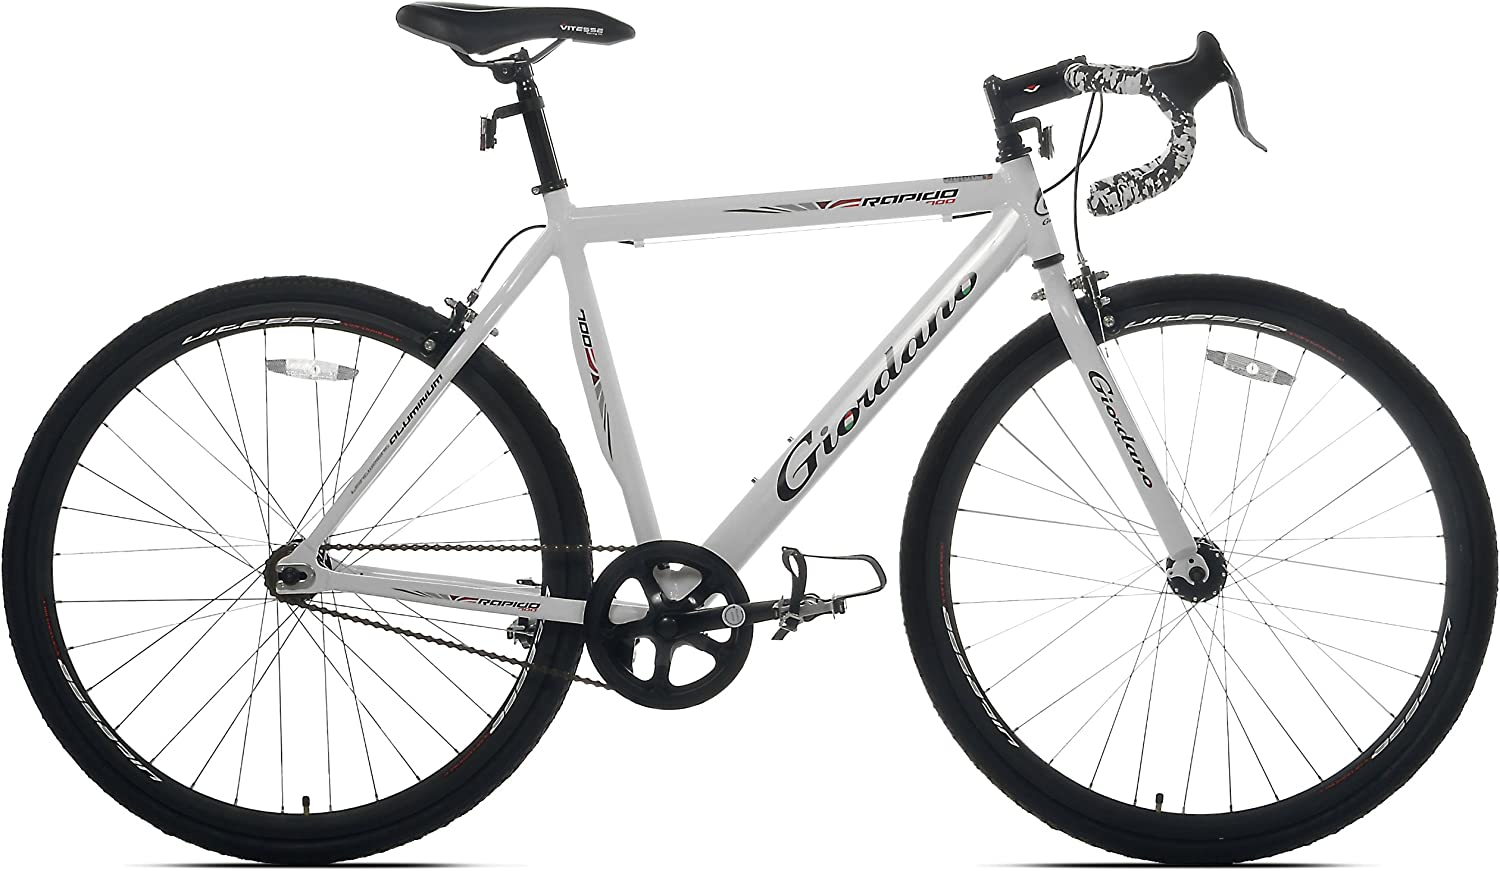 Giordano-Rapido-Single-Speed-Road-Bike-1